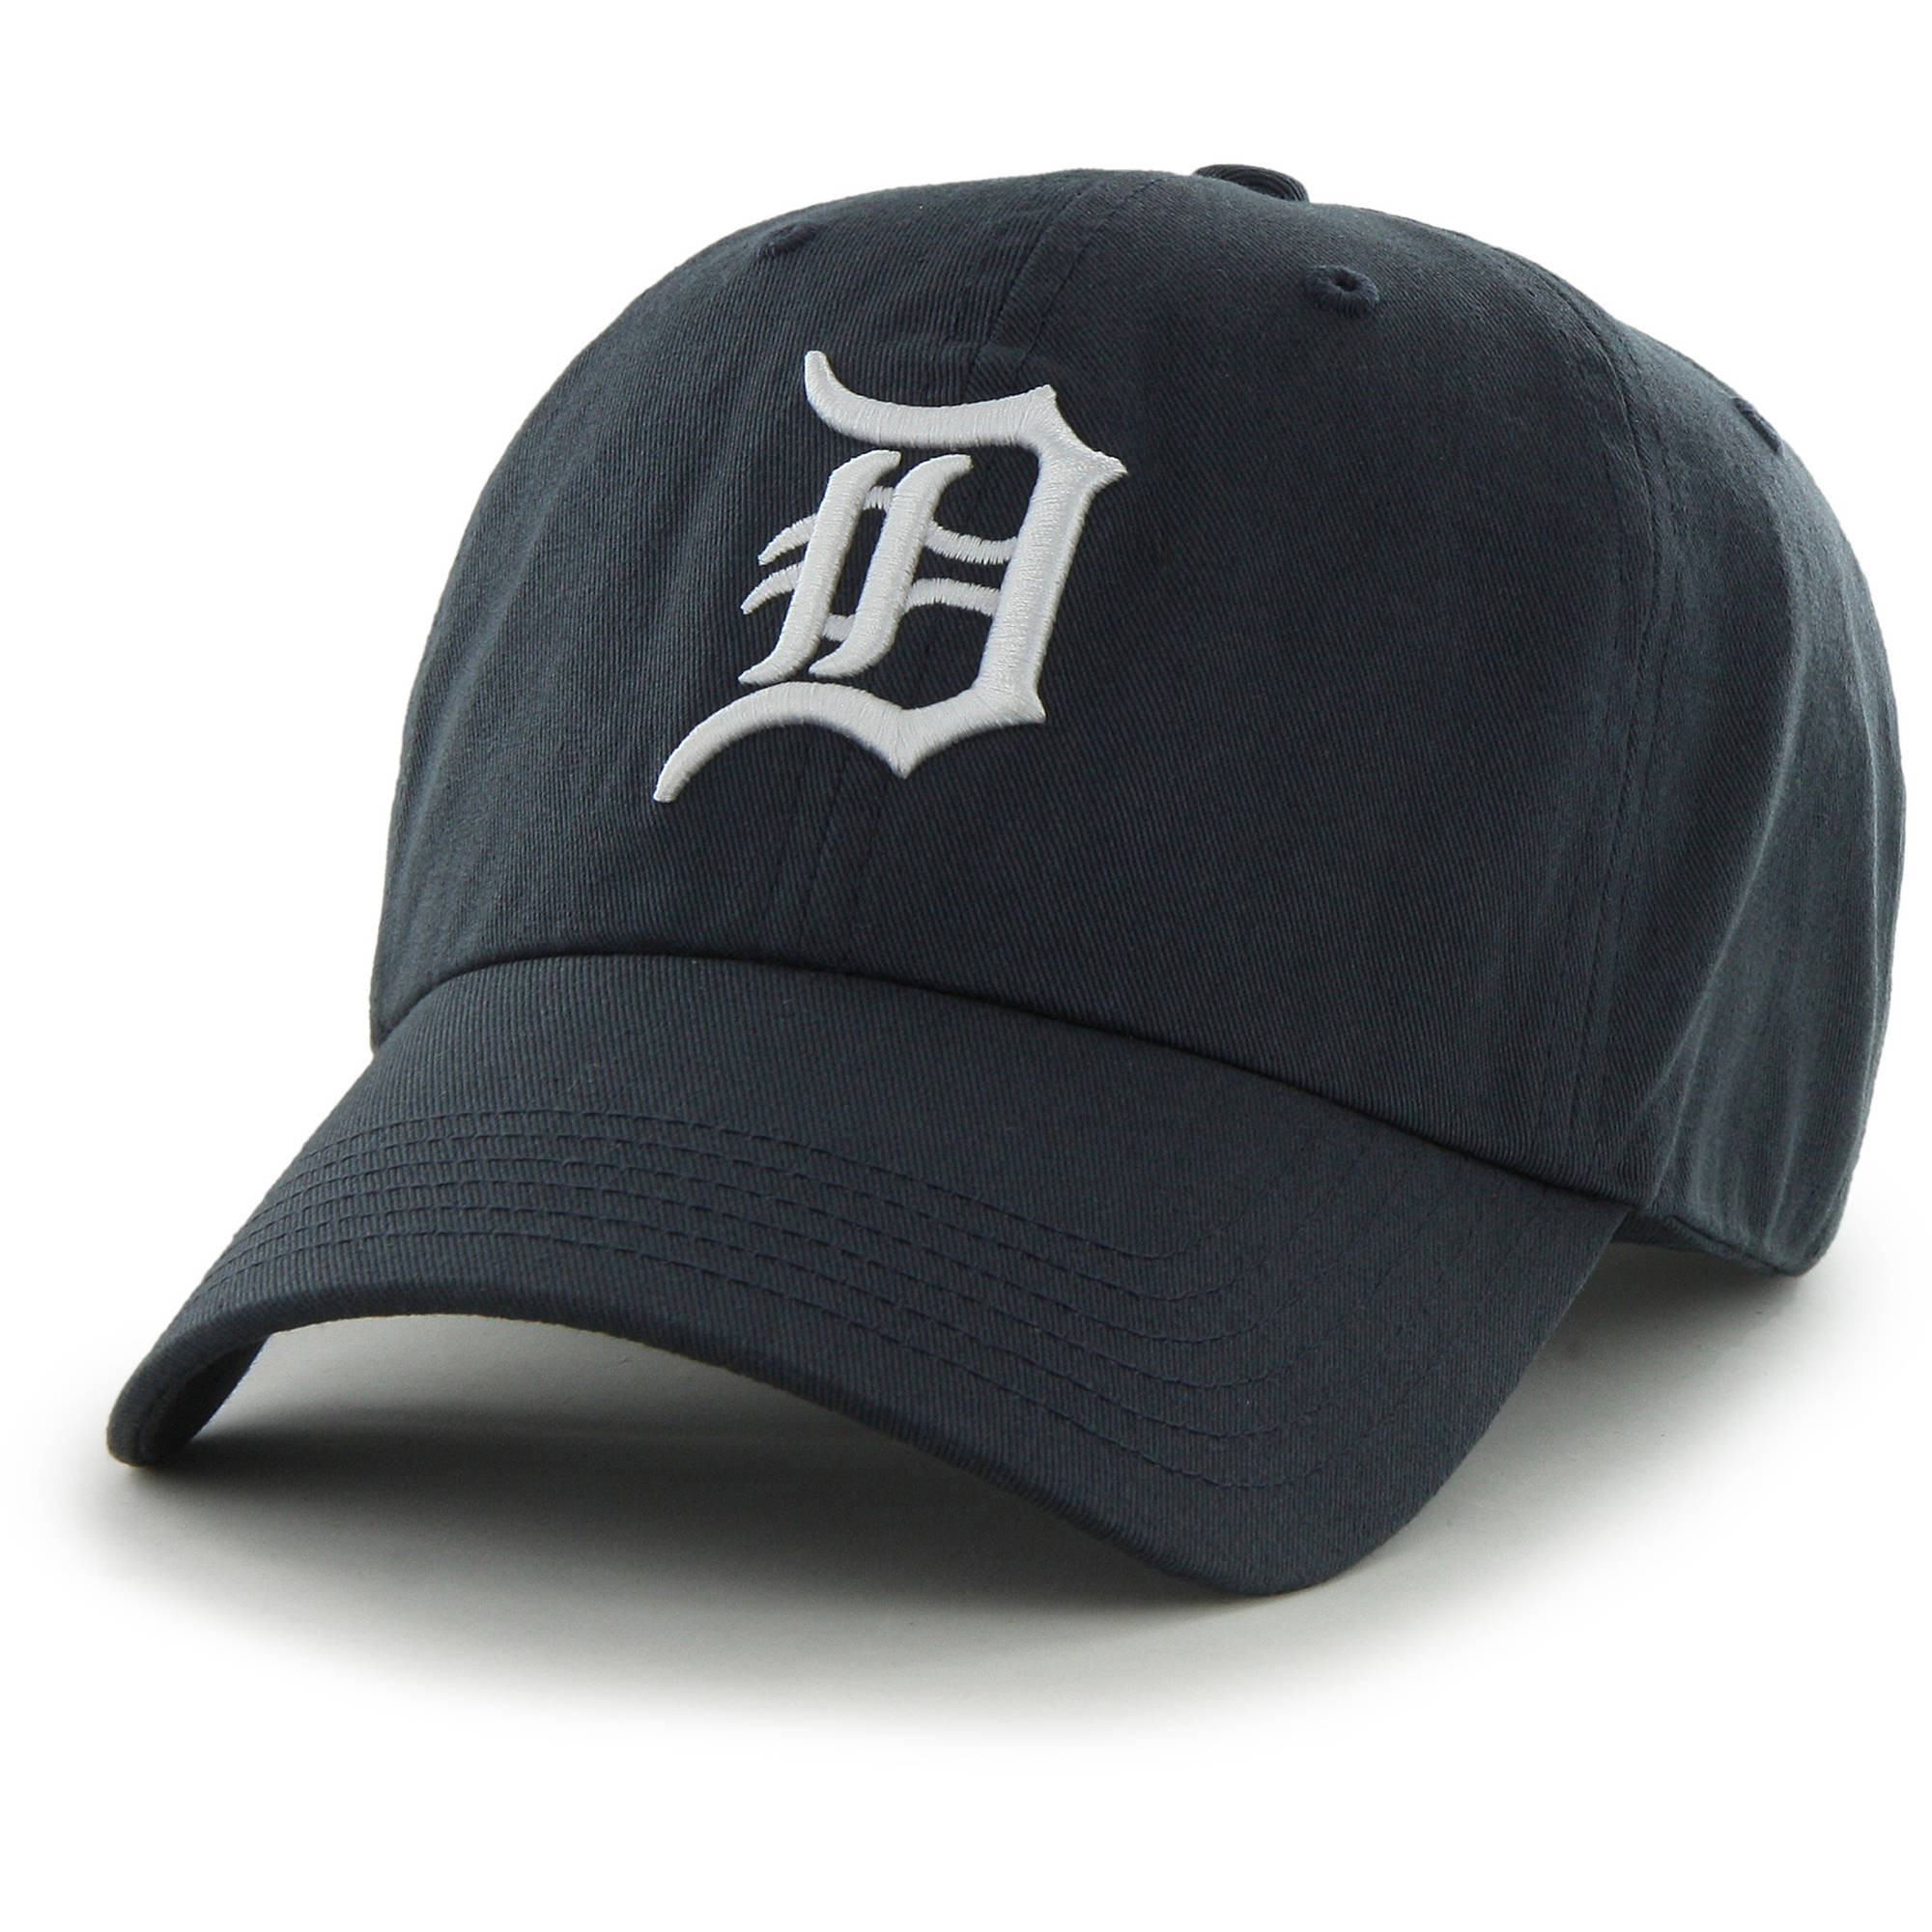 MLB Detroit Tigers Clean Up Cap / Hat by Fan Favorite